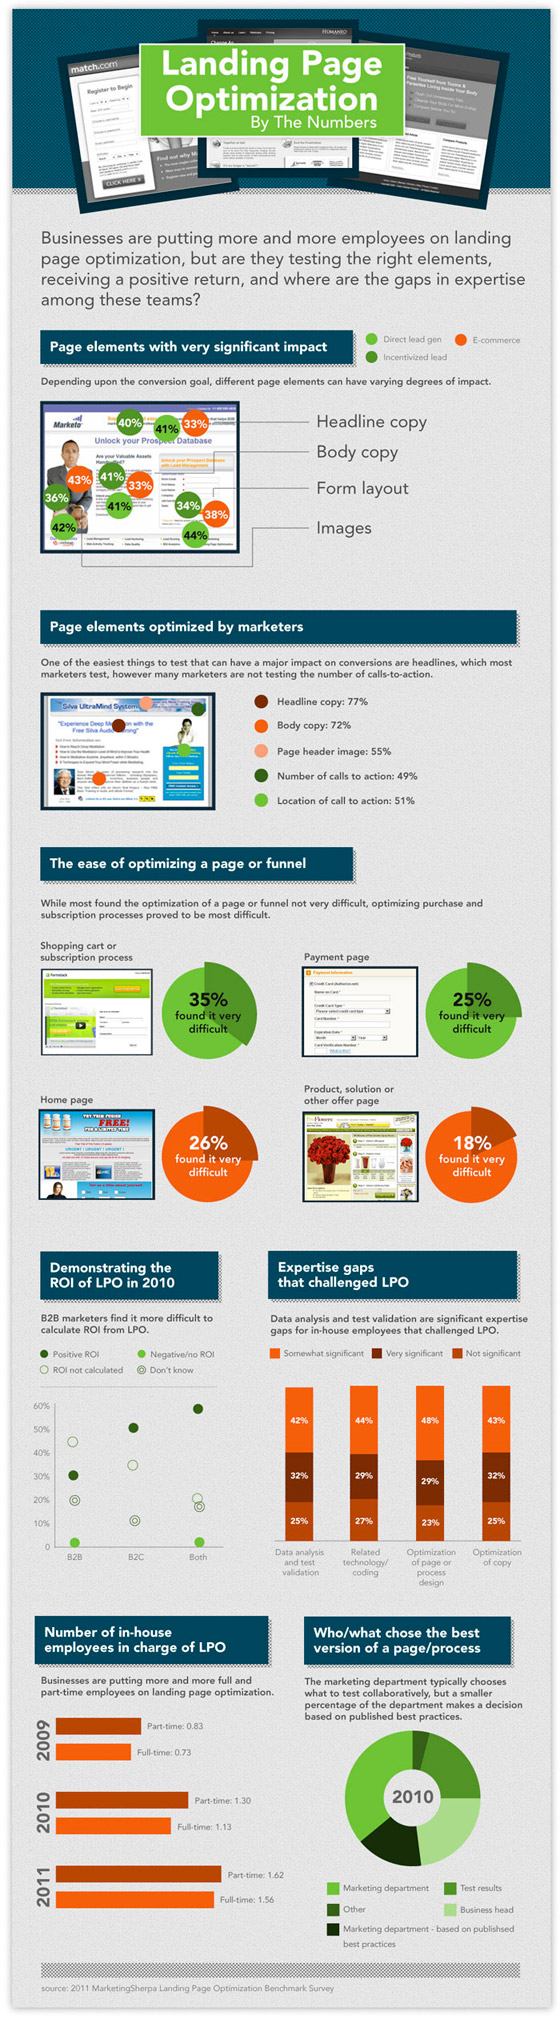 landing page optimization by the numbers